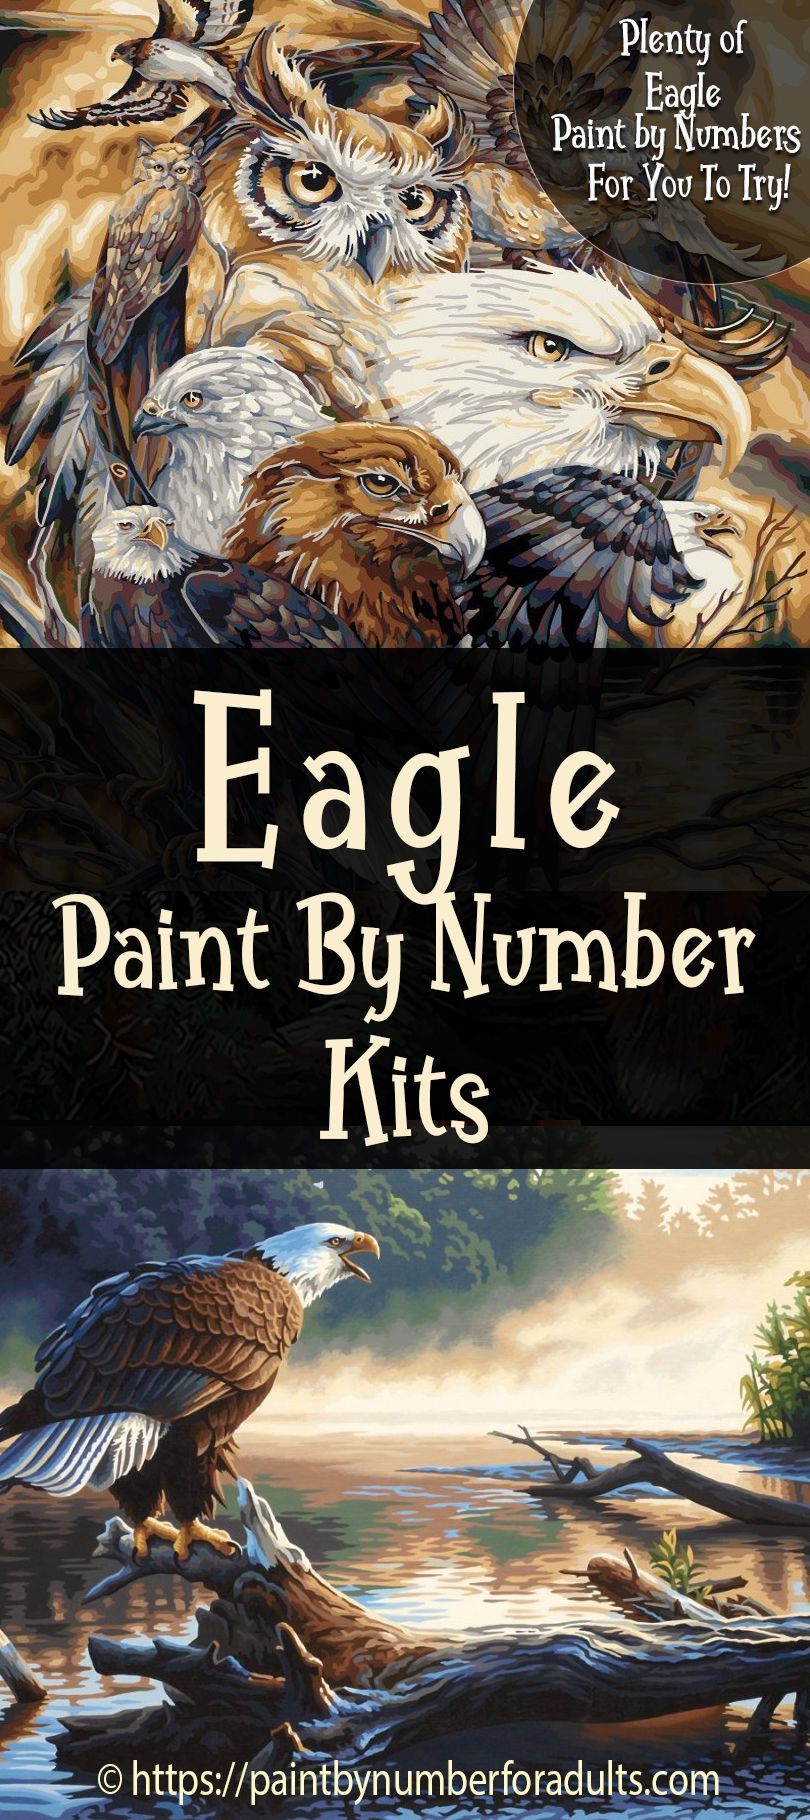 Are you looking for Eagle Paint By Number Kits? You'll